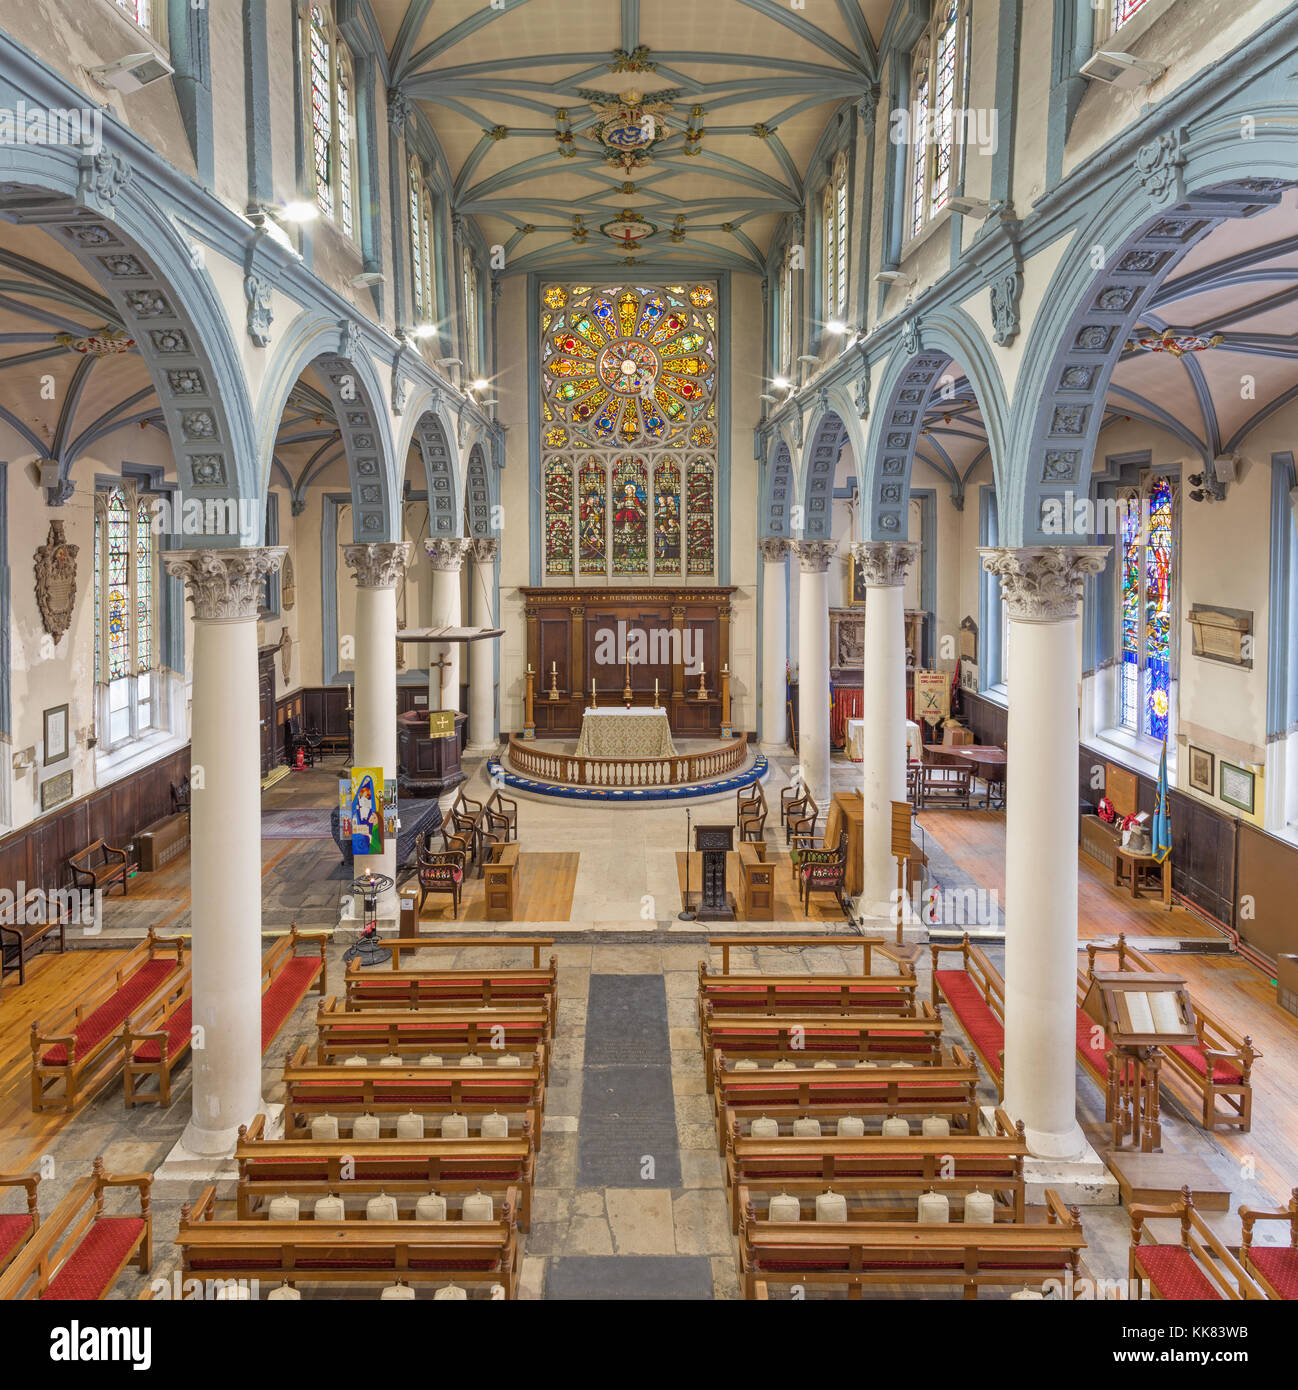 LONDON, GREAT BRITAIN - SEPTEMBER 14, 2017: The church St. Catharine Cree. - Stock Image